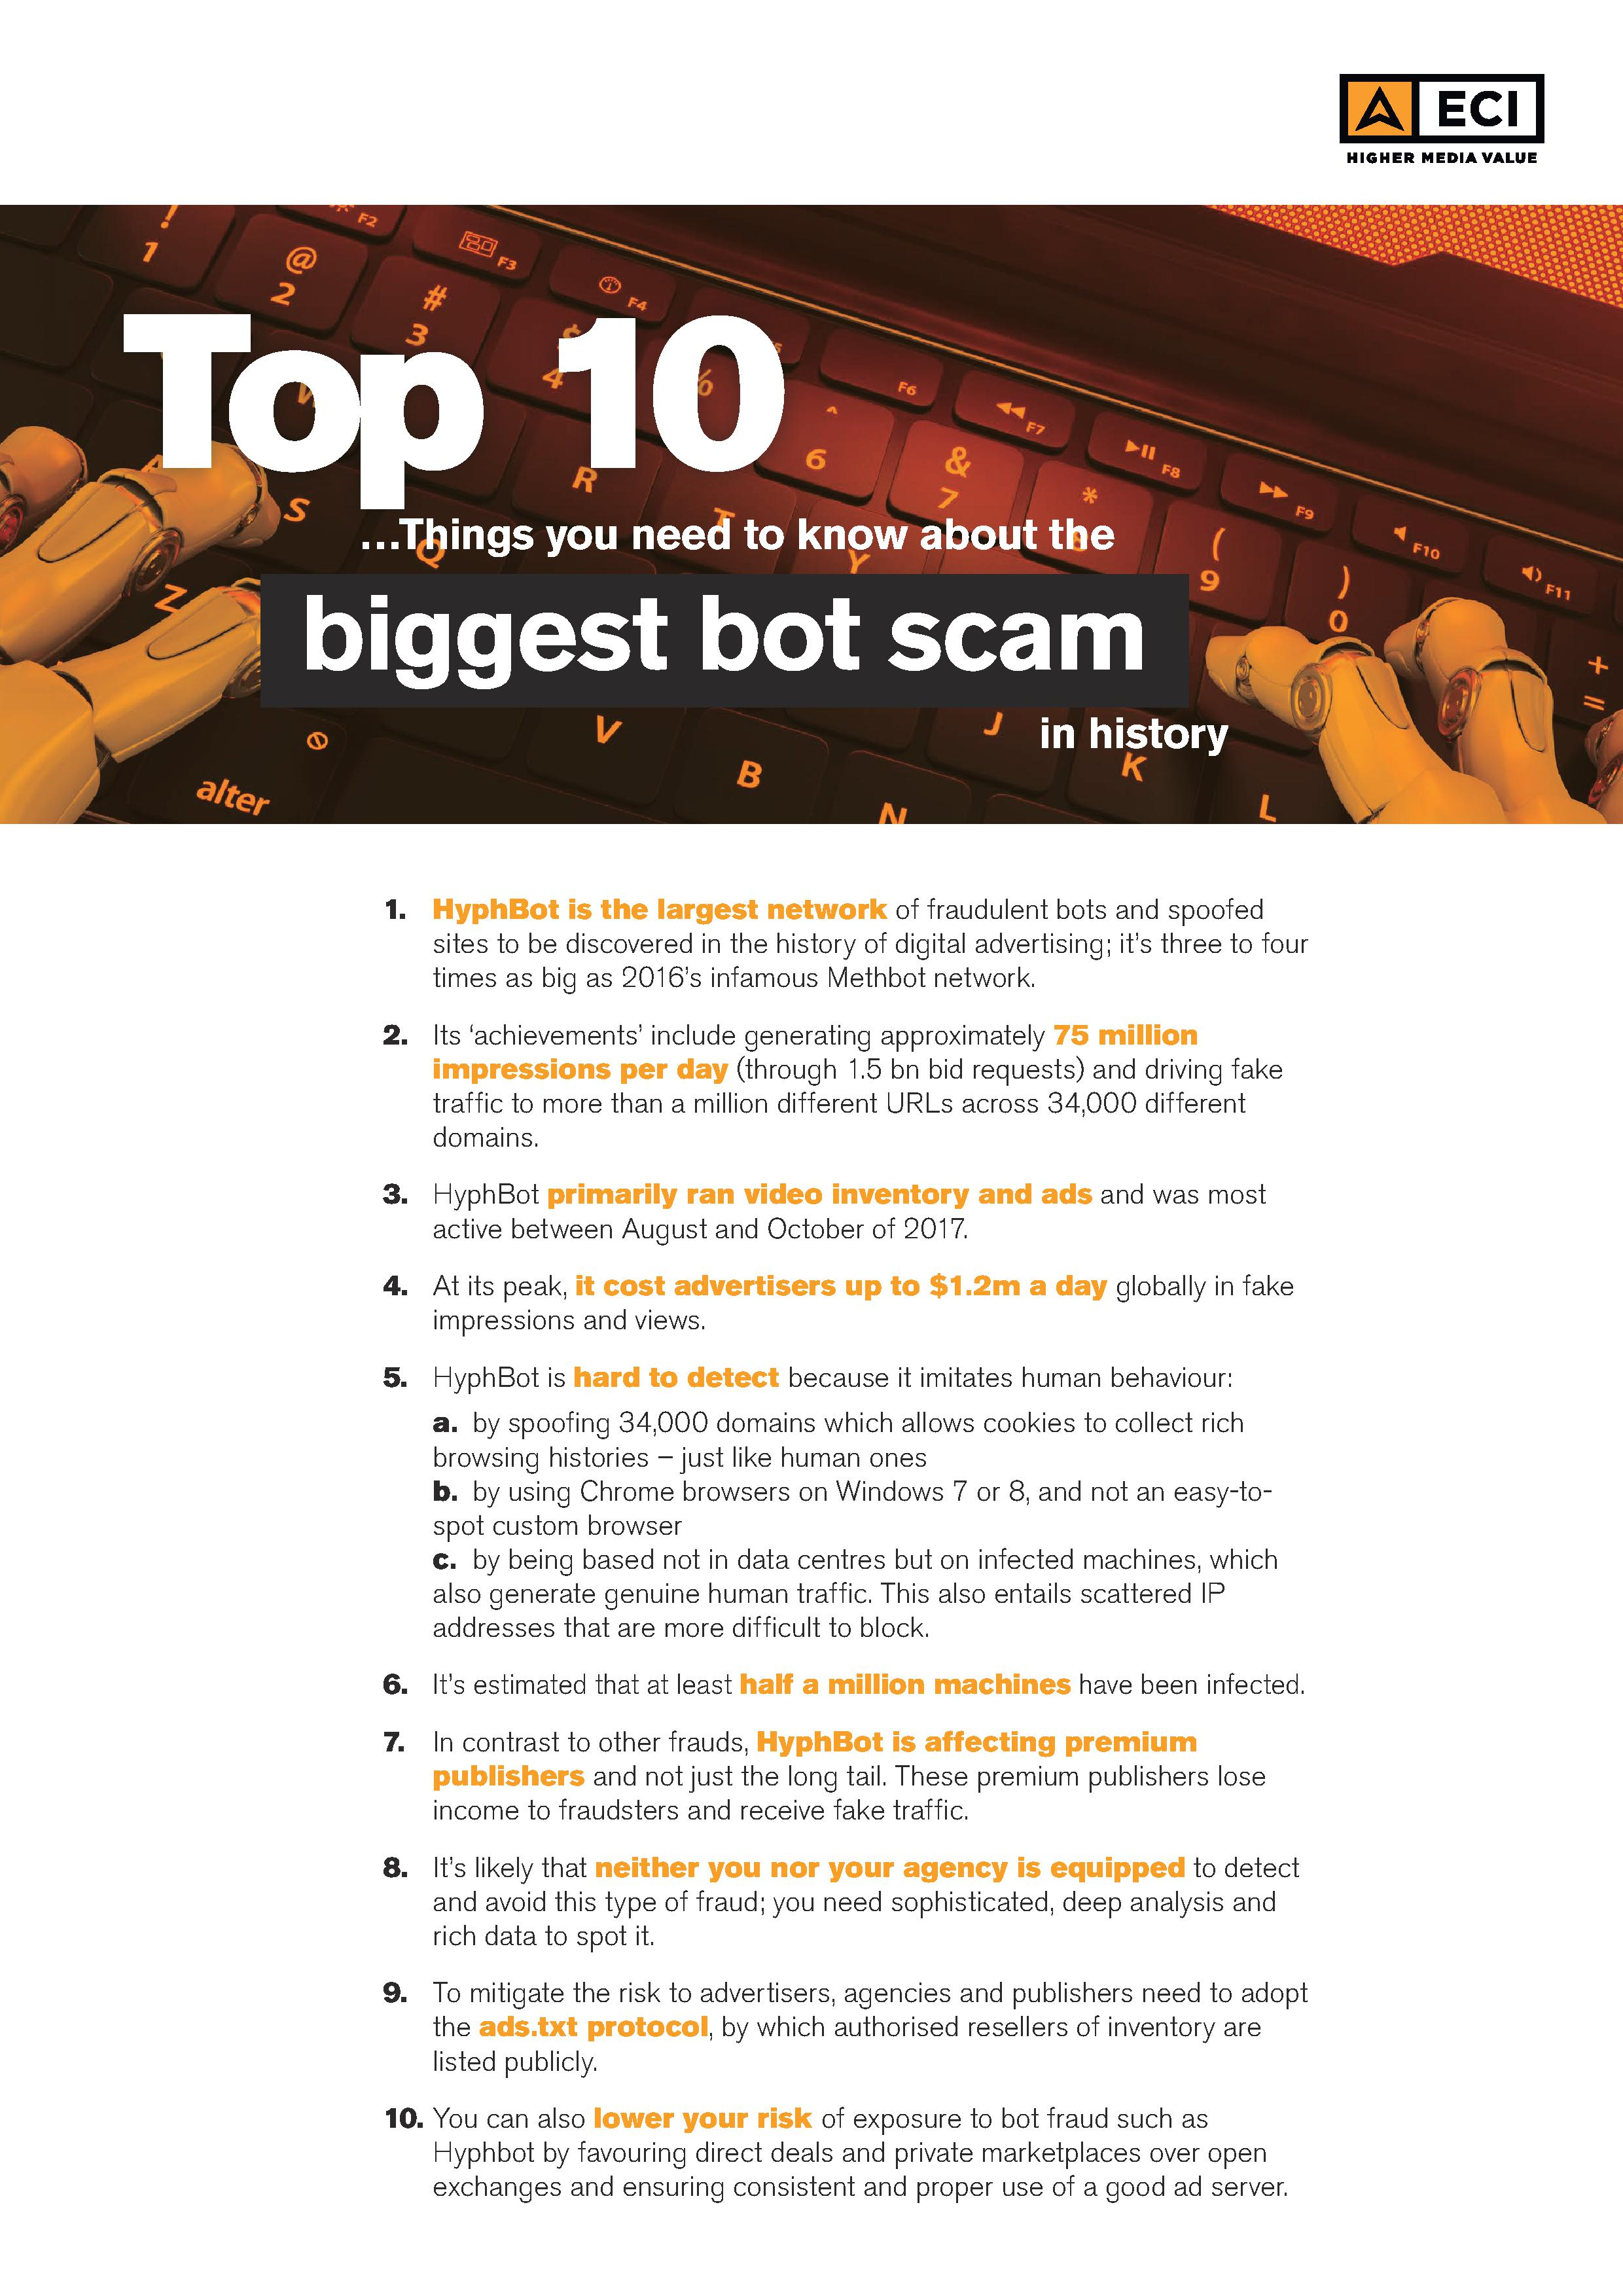 top-10-things-you-need-to-know-about-the-biggest-bot-scam-in-history001